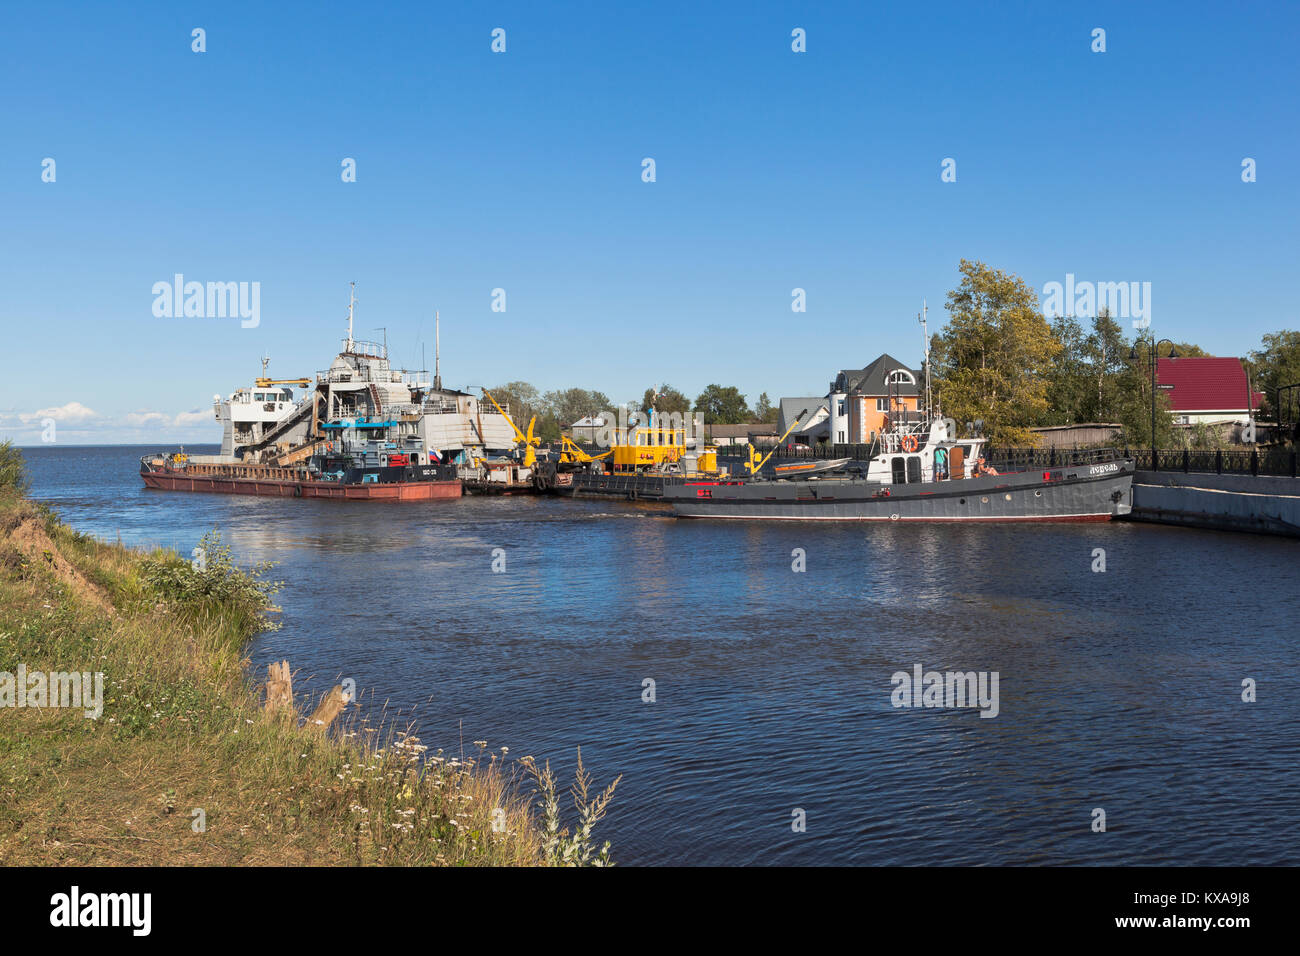 Belozersk, Vologda region, Russia - August 10, 2015: Vessels of technical fleet at the entrance to Belozersky bypass - Stock Image